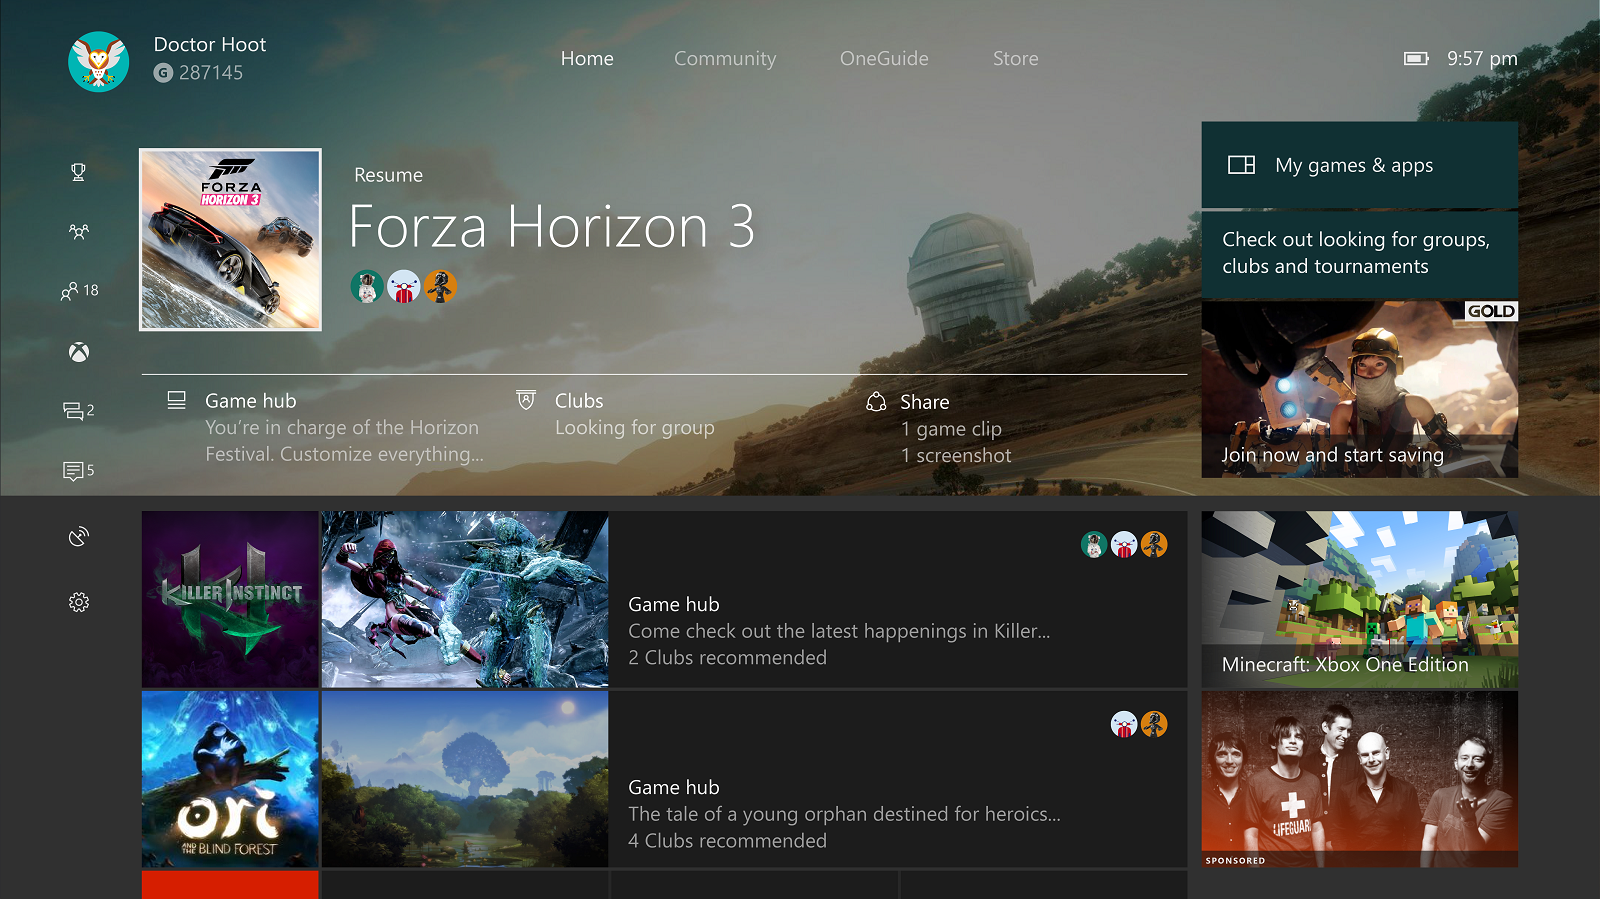 Microsoft removes 'Snap' feature from Xbox One operating system